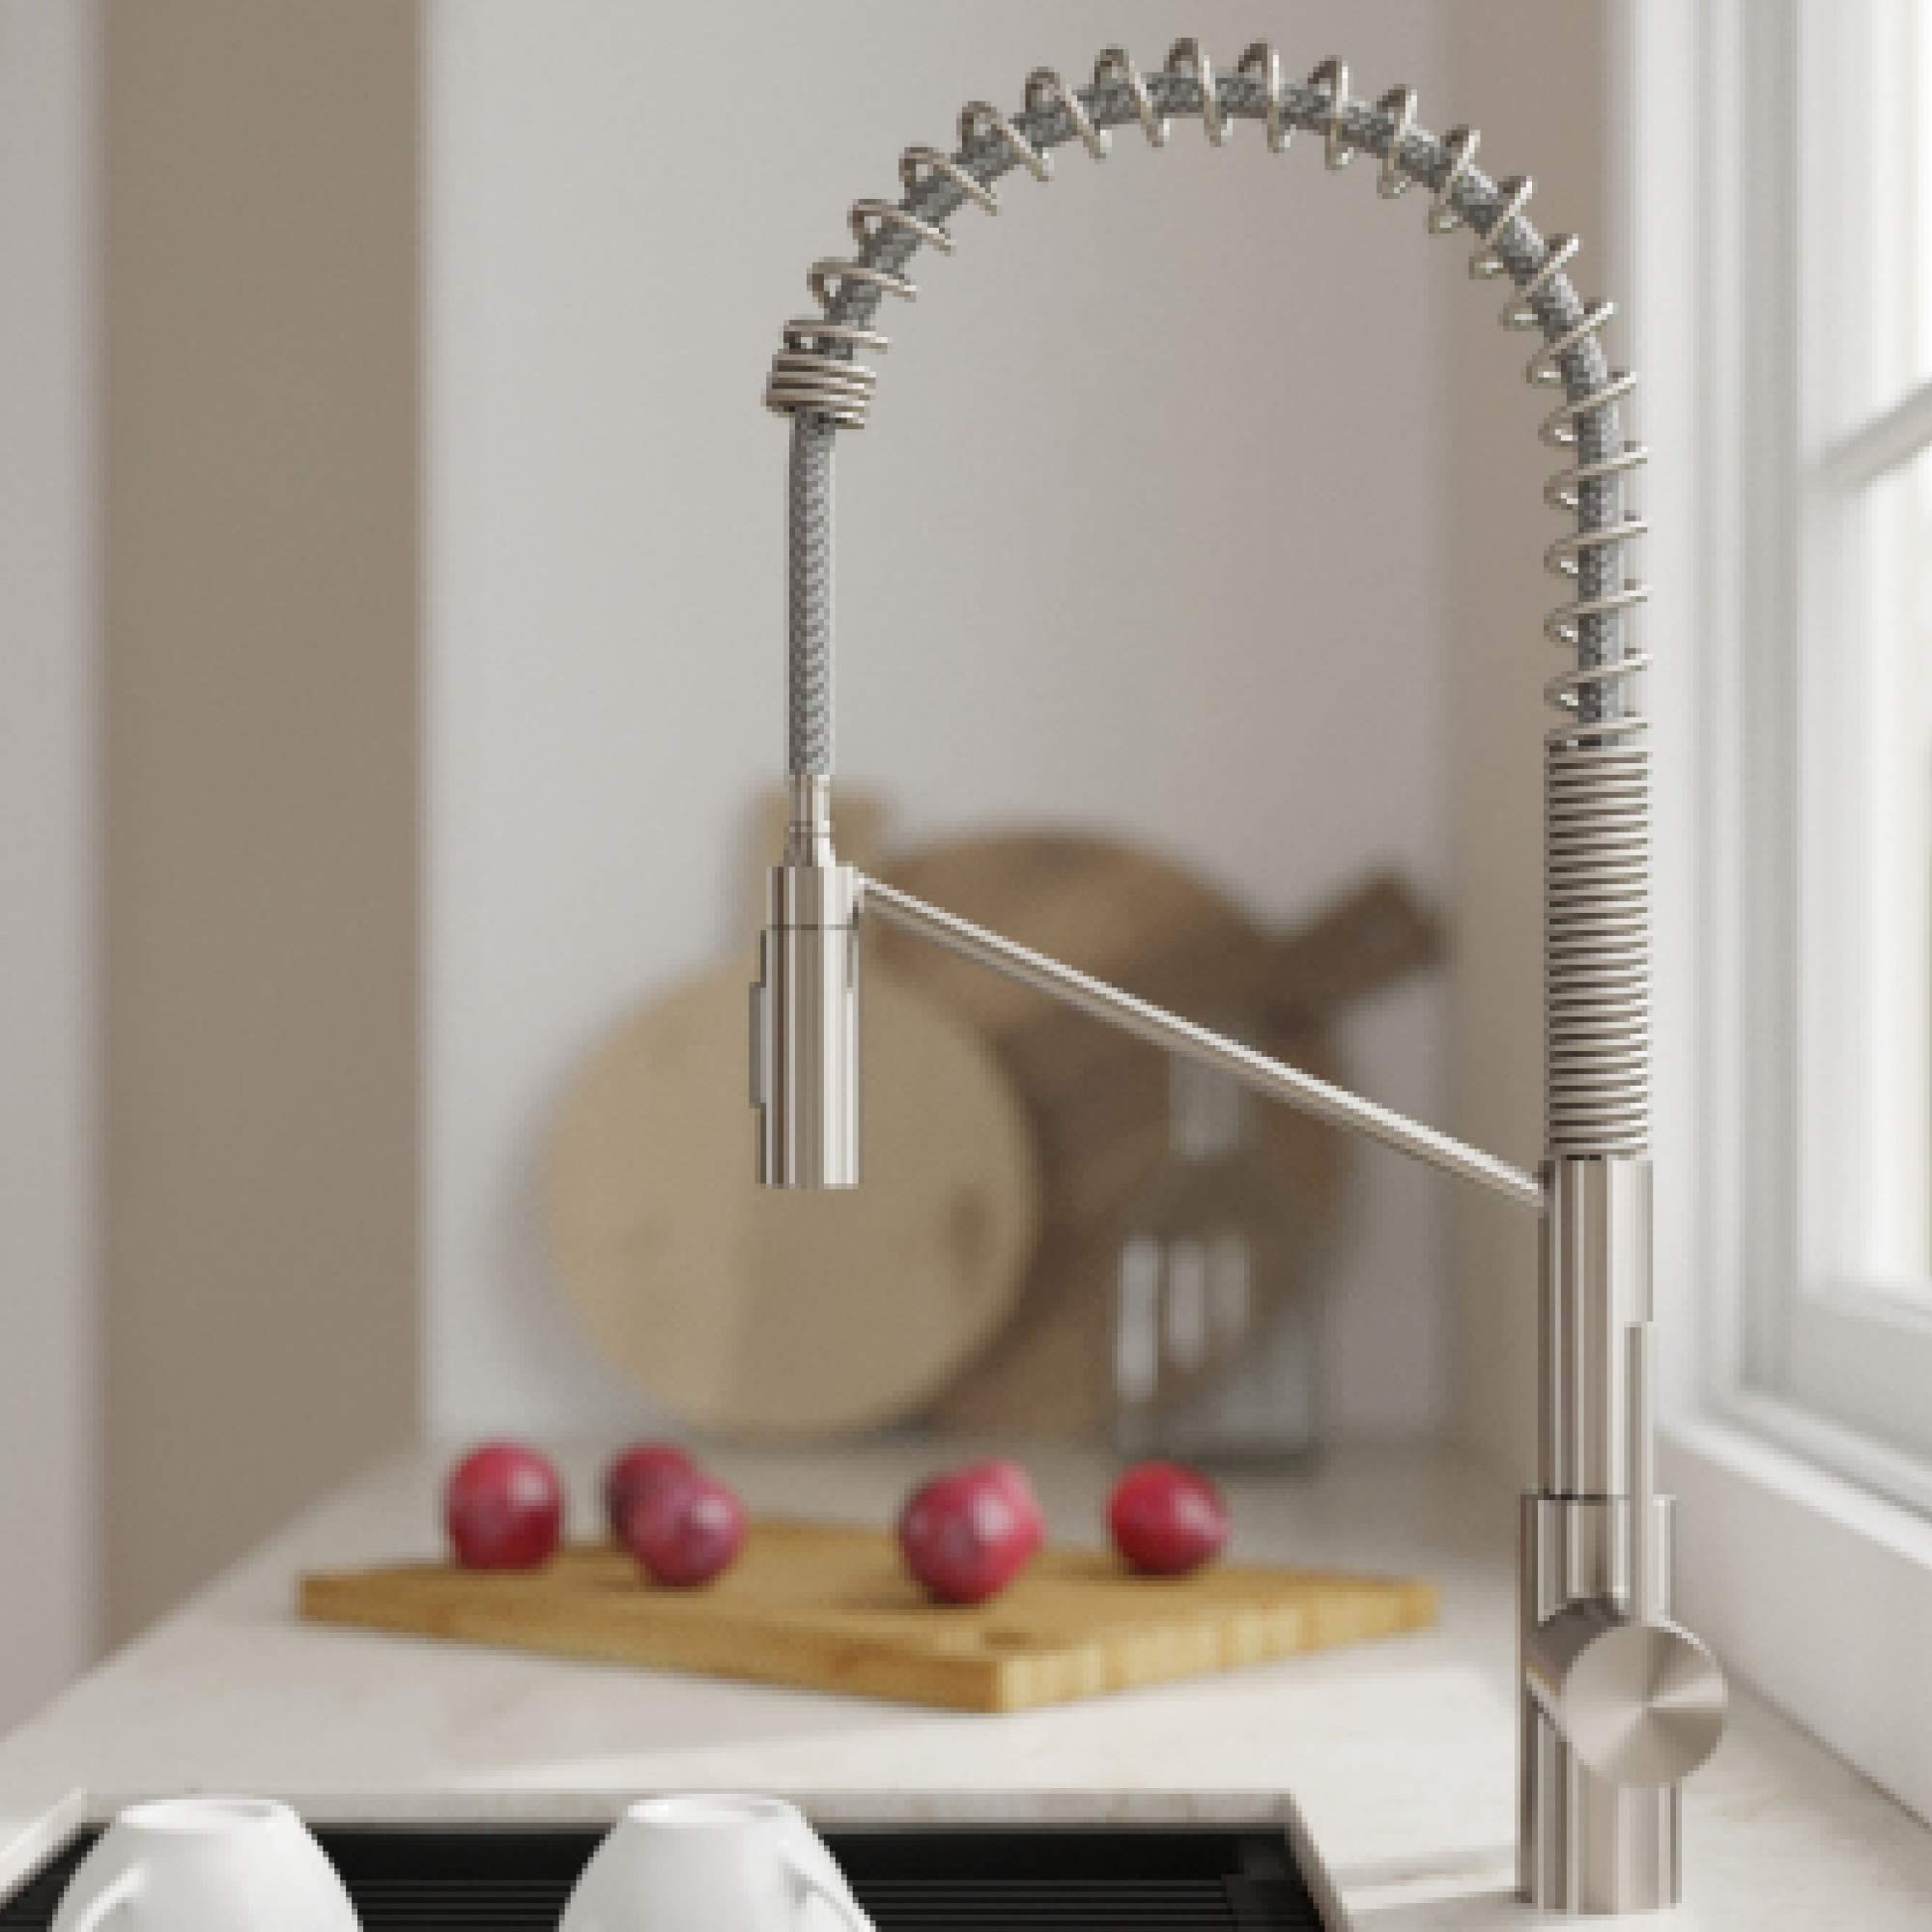 Kraus KPF-2631SFS Oletto Kitchen Faucet, 21.75 inch, Spot Free Stainless Steel by Kraus (Image #4)